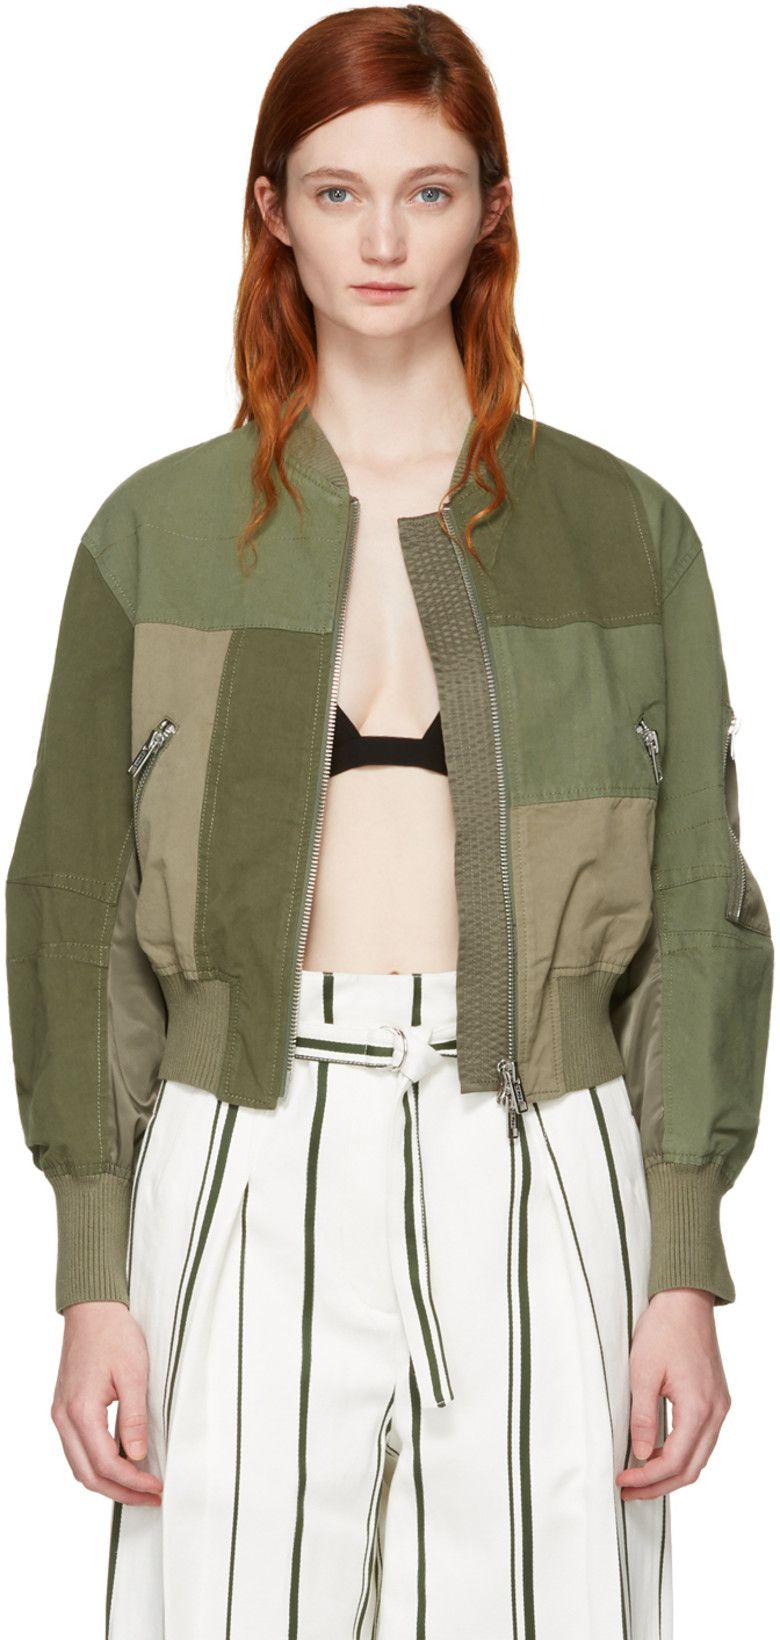 Pin by Thalia O on Outwear Army green bomber jacket